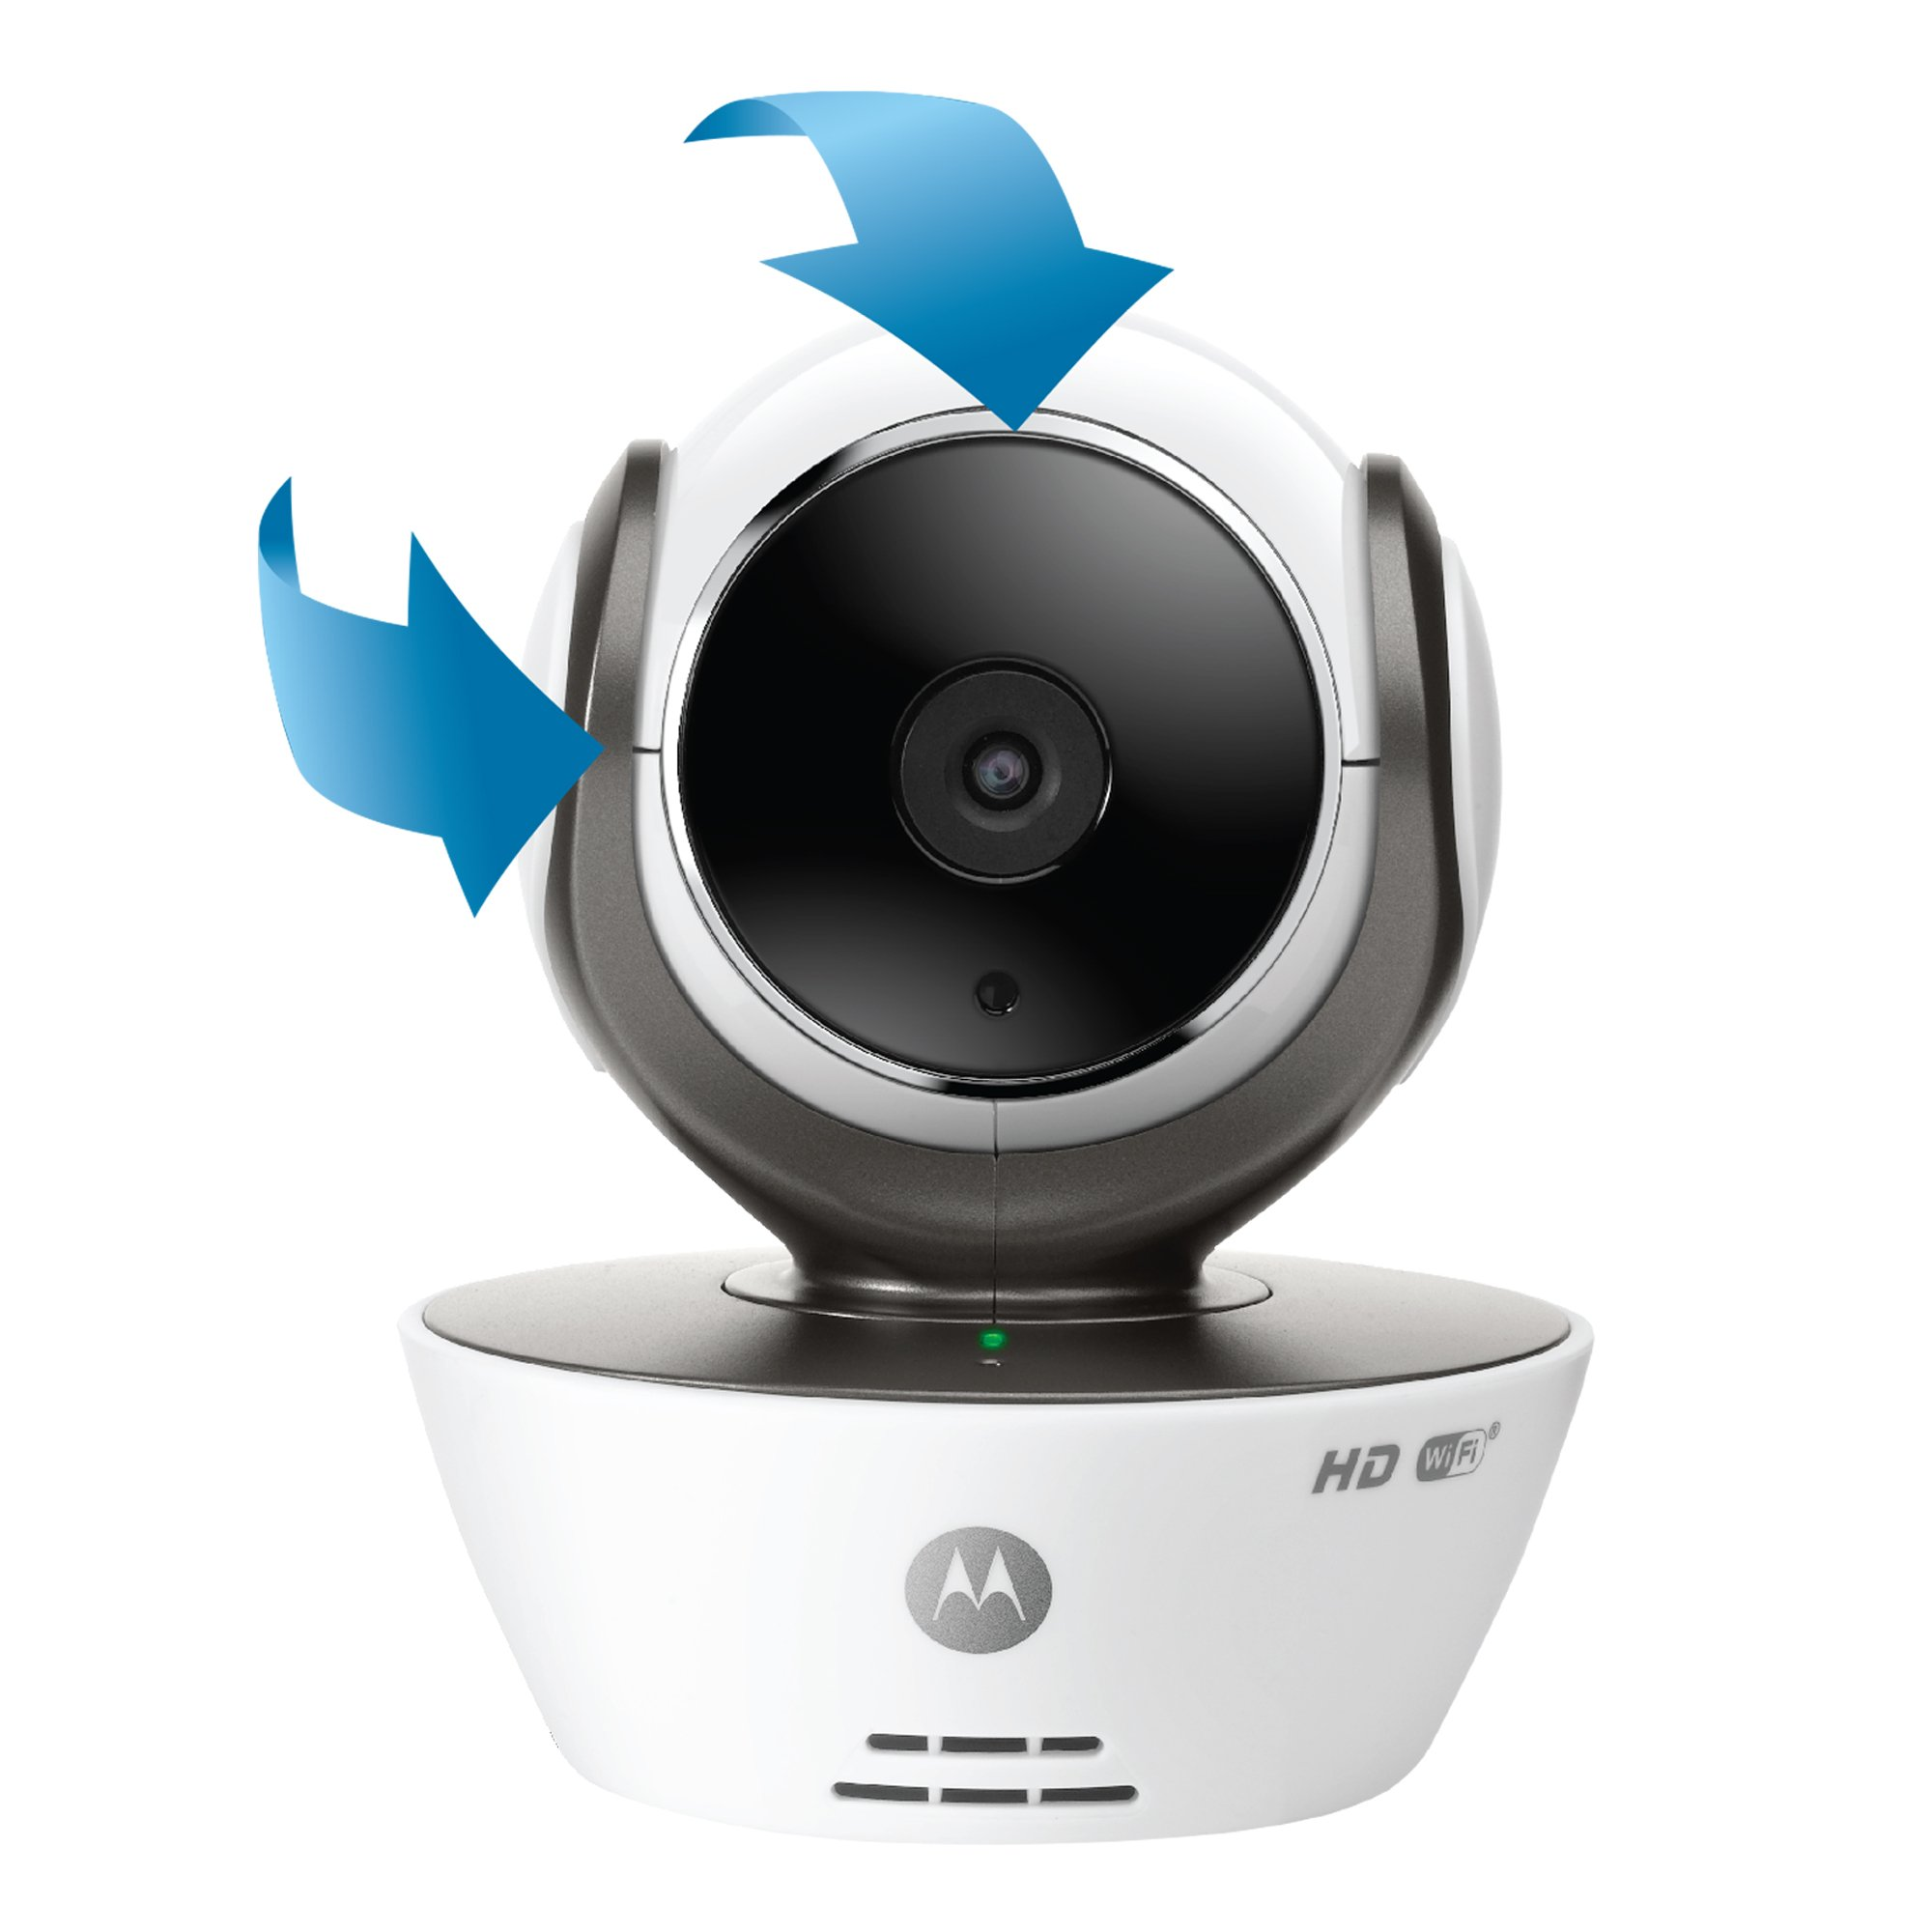 Motorola MBP853CONNECT-2 Dual Mode Baby Monitor with 2 Cameras and 3.5-Inch LCD Parent Monitor and Wi-Fi Internet Viewing by Motorola Baby (Image #5)